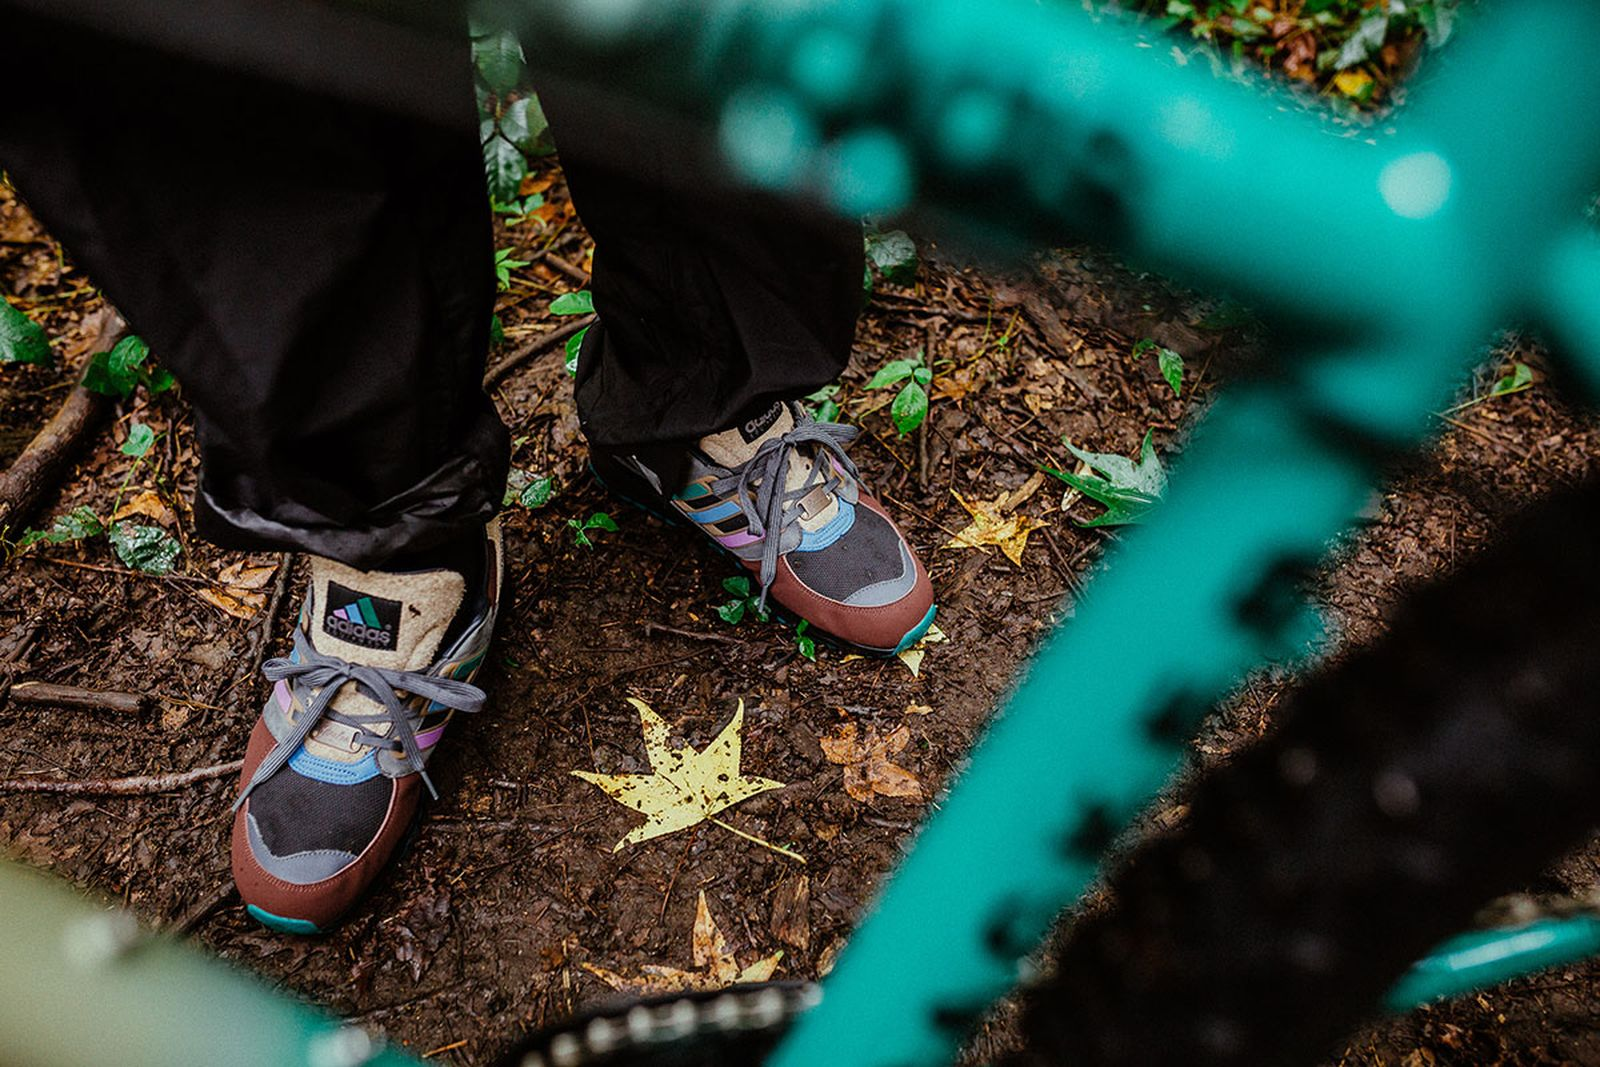 packer adidas eqt cushion 91 release date price packer shoes